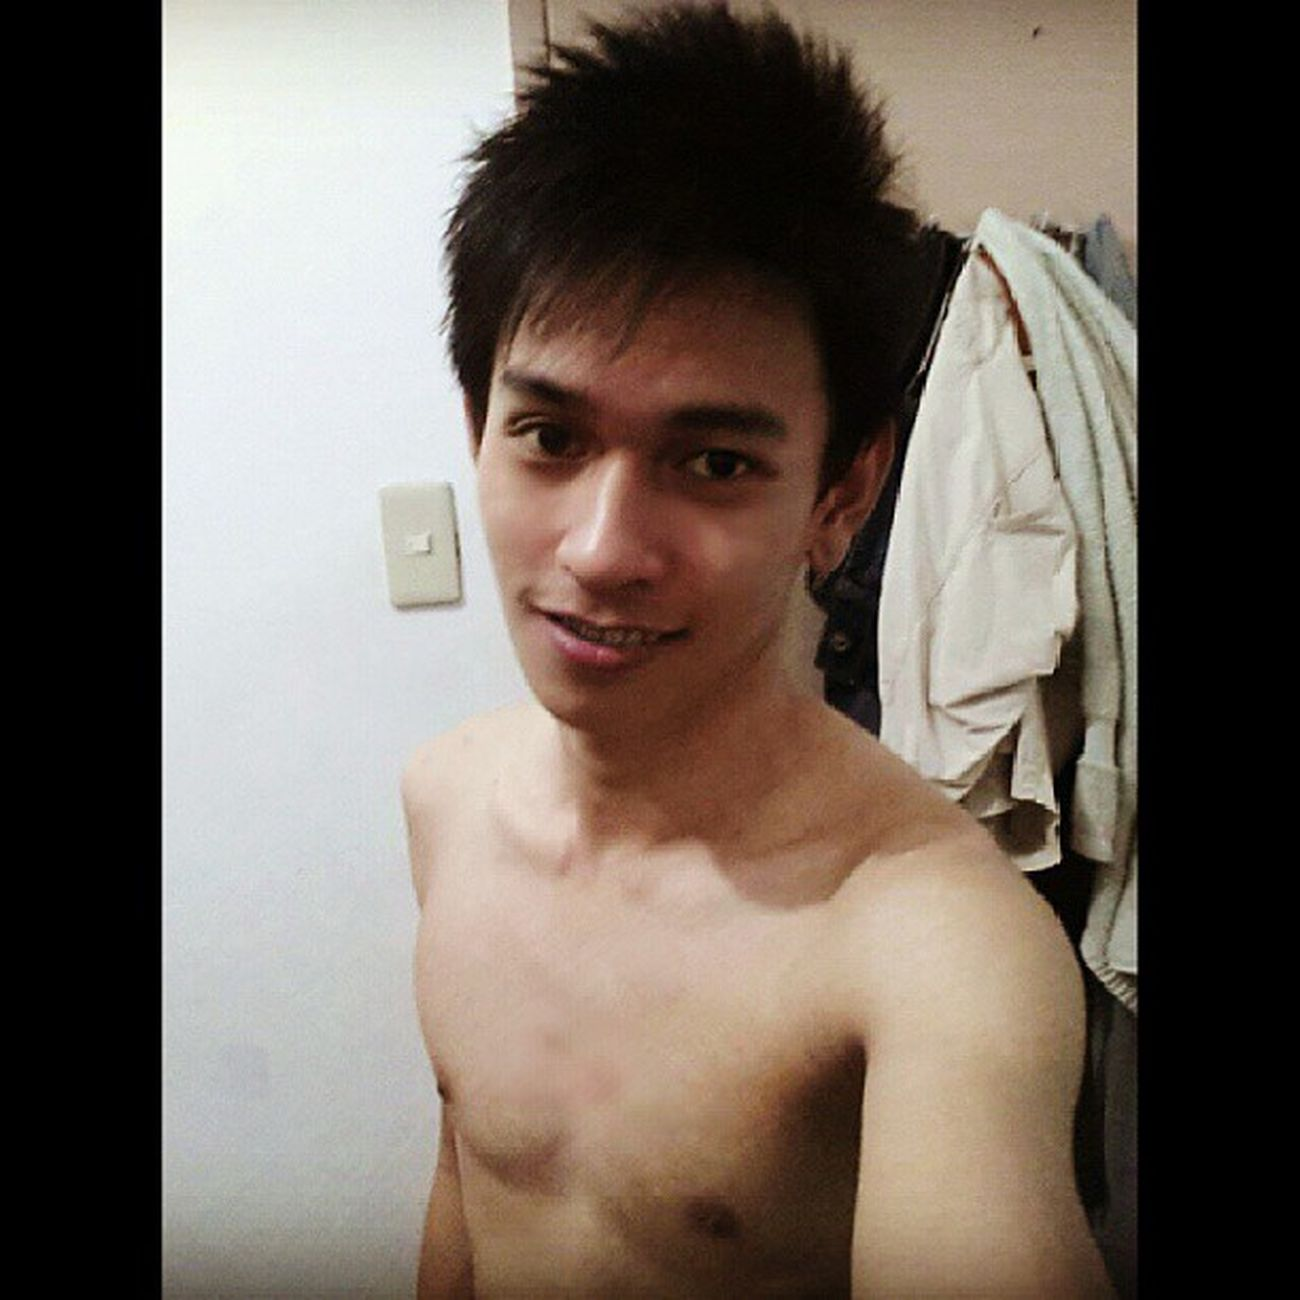 The naked truth after shower! ツ Topless Undressed Naked Instaporn pornstagram camwhore whoreman